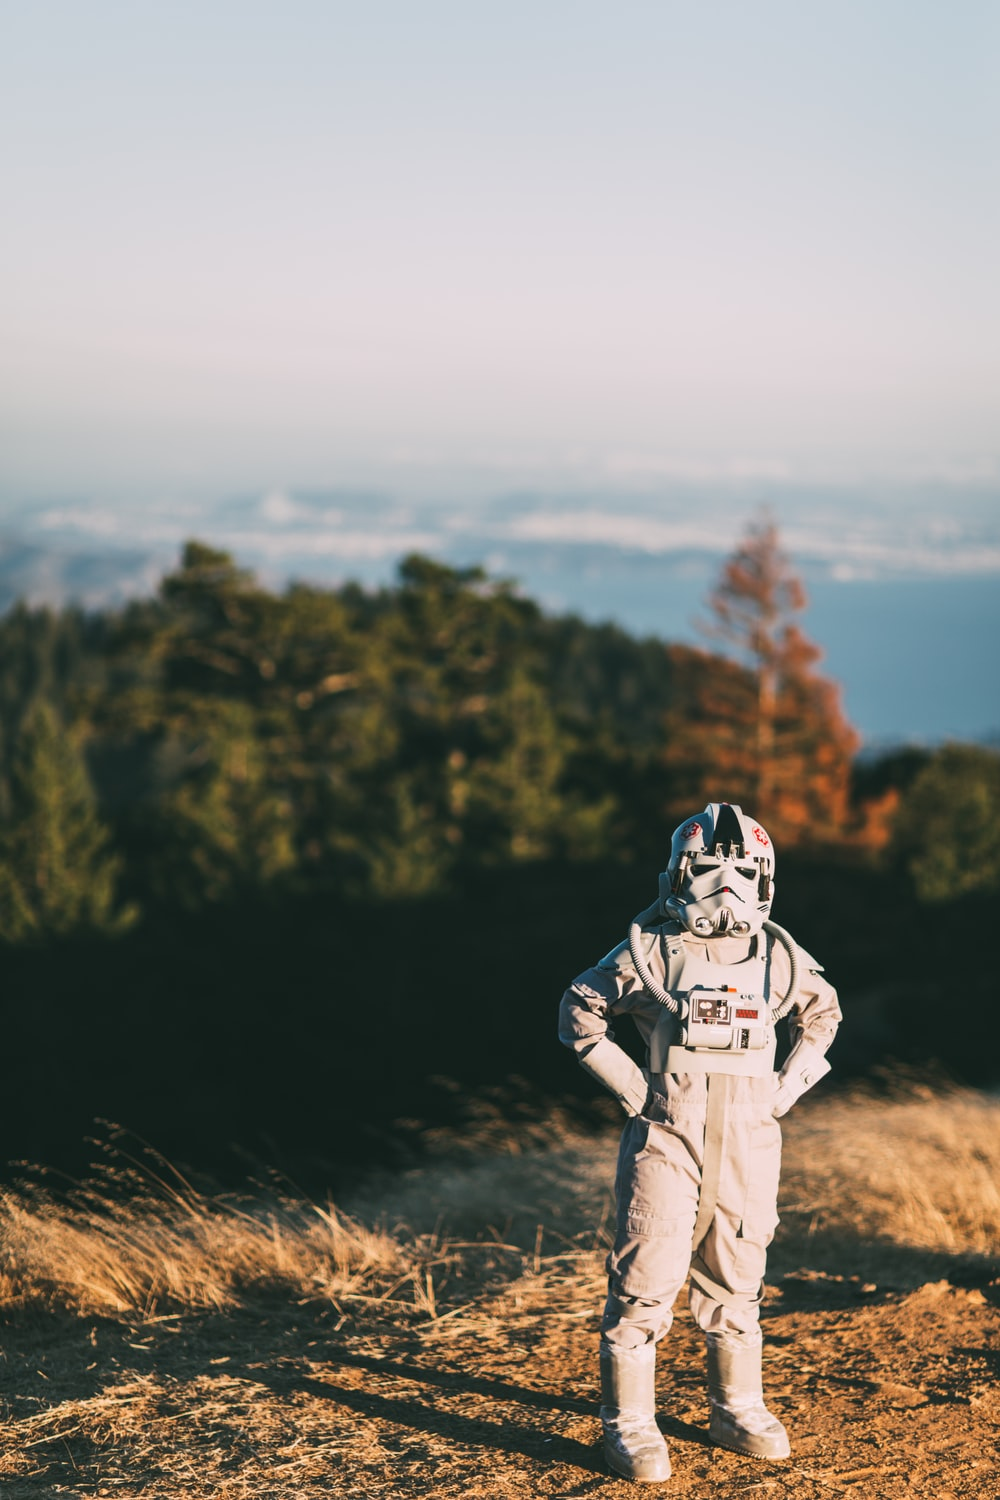 selective focus photography of person wearing Stormtrooper costume